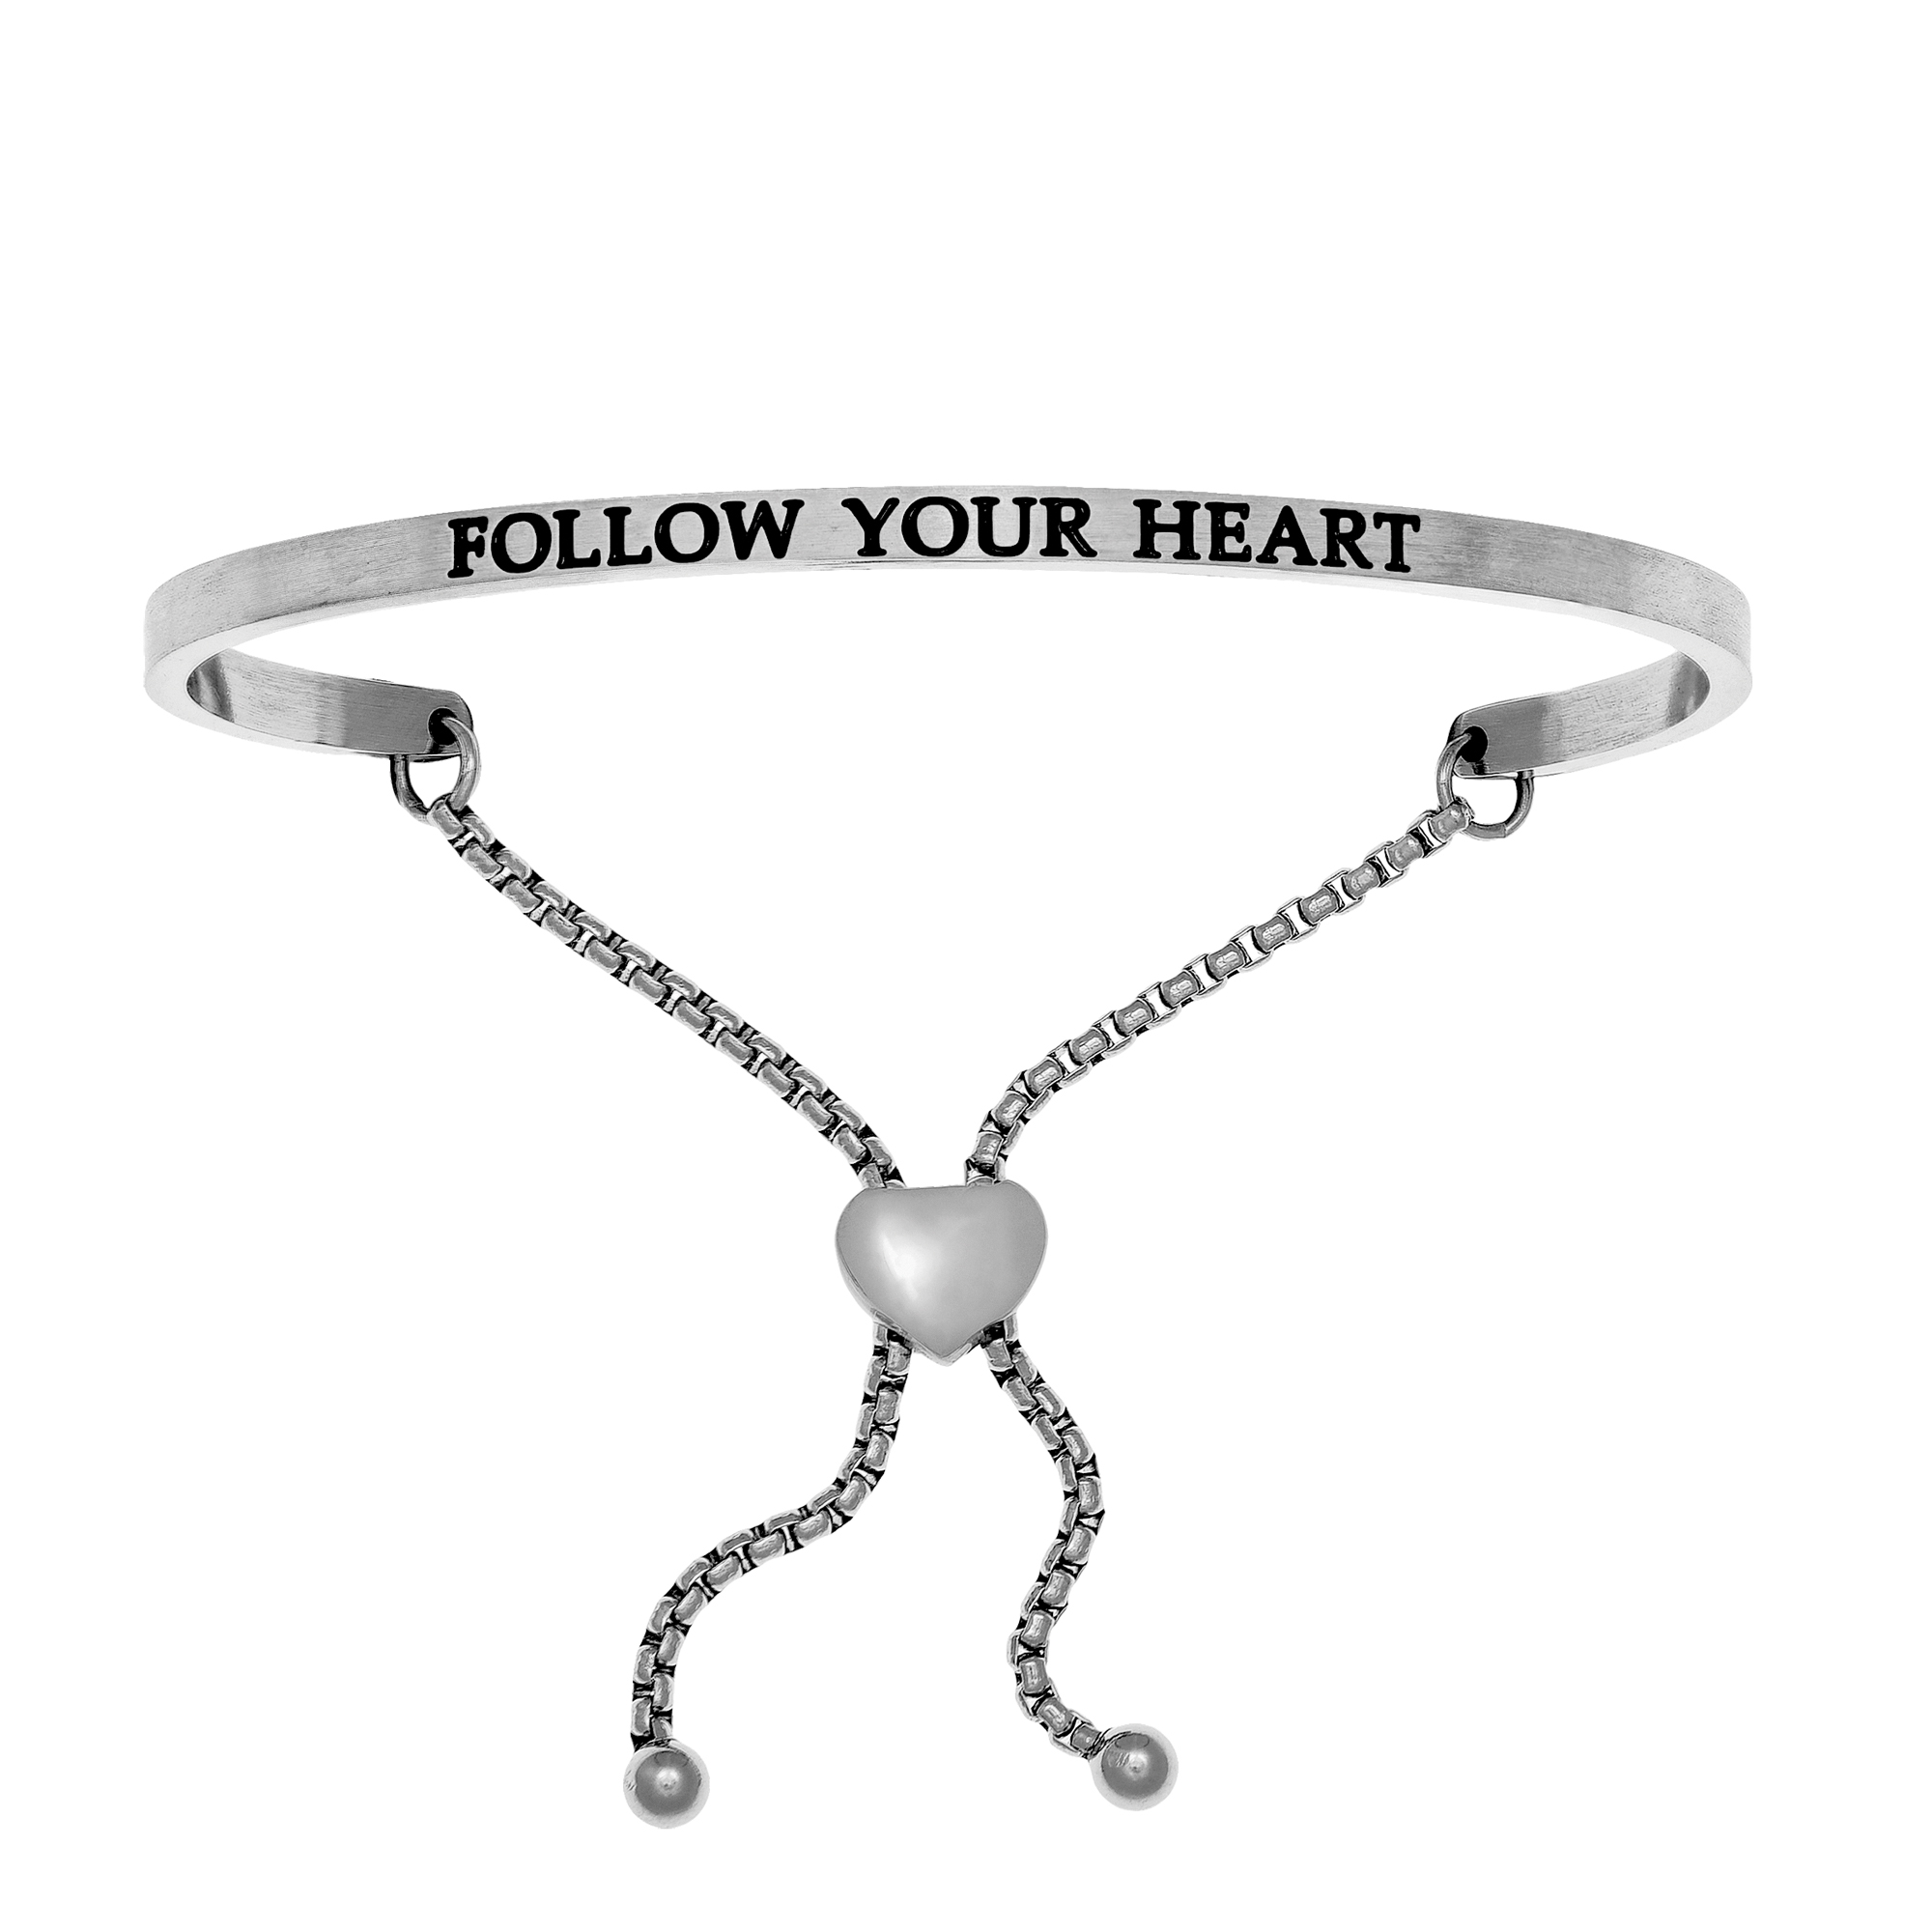 Intuitions Stainless Steel FOLLOW YOUR HEART Diamond Accent Adjustable Bracelet Each of these bracelets carries a personal message of inspiration, spirituality or just plain fun. Meant to be worn alone or stacked together for a smart, contemporary look, they're a great self-purchase or as a gift for family or friends. Intuitions are made of stainless steel and come in two styles standard cuff or friendship and fit practically any wrist. Intuitions Jewelry makes the difference in your daily life by designing and creating bracelets and bangles with motivational quotes to inspire you and your loved ones. Giving back $.25 of each bracelet to BABY2BABY